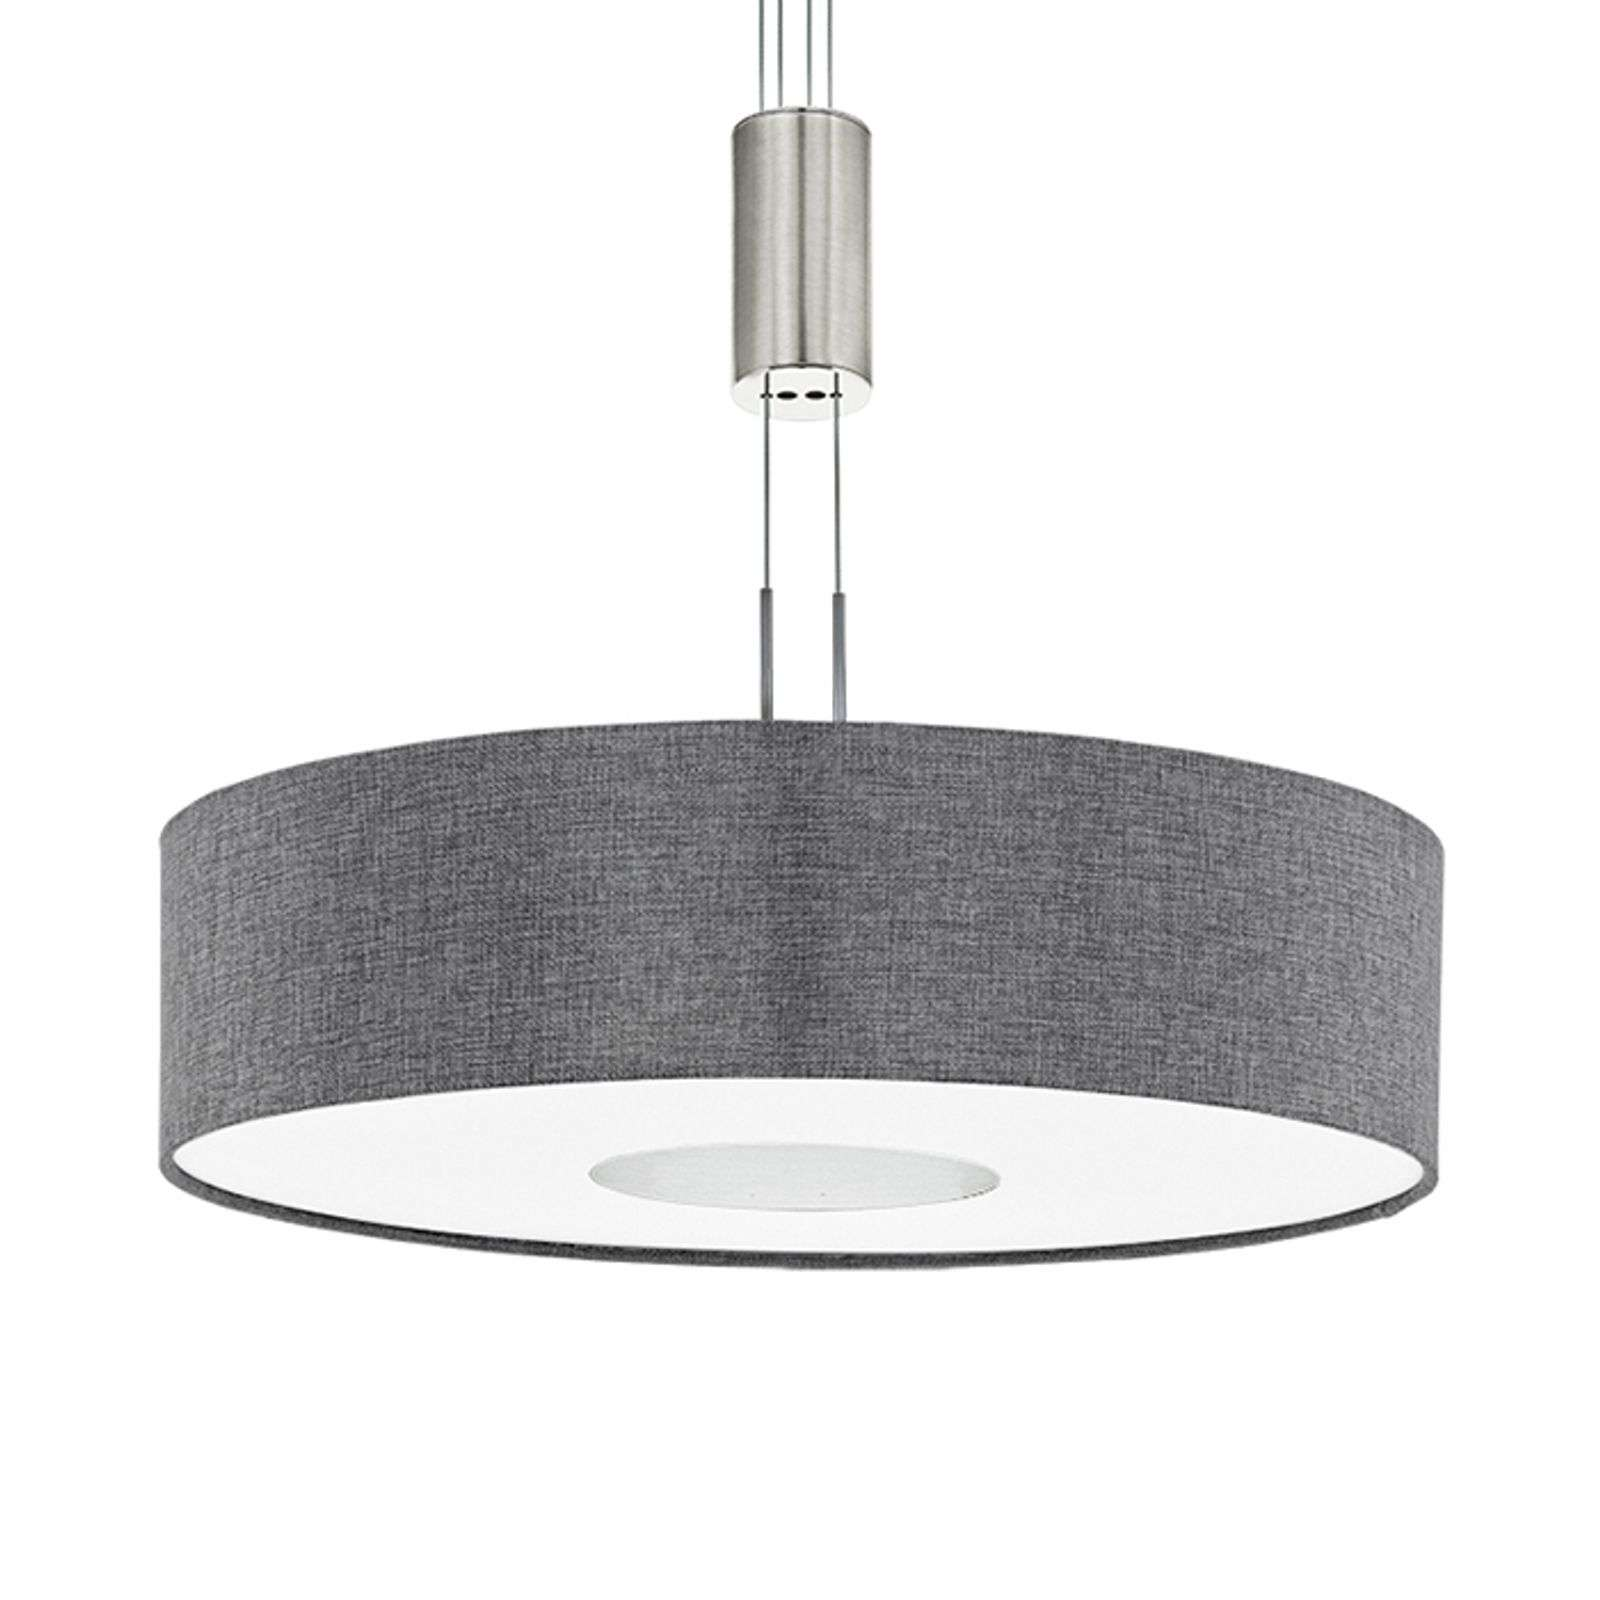 Suspension LED Romano textile, hauteur réglable